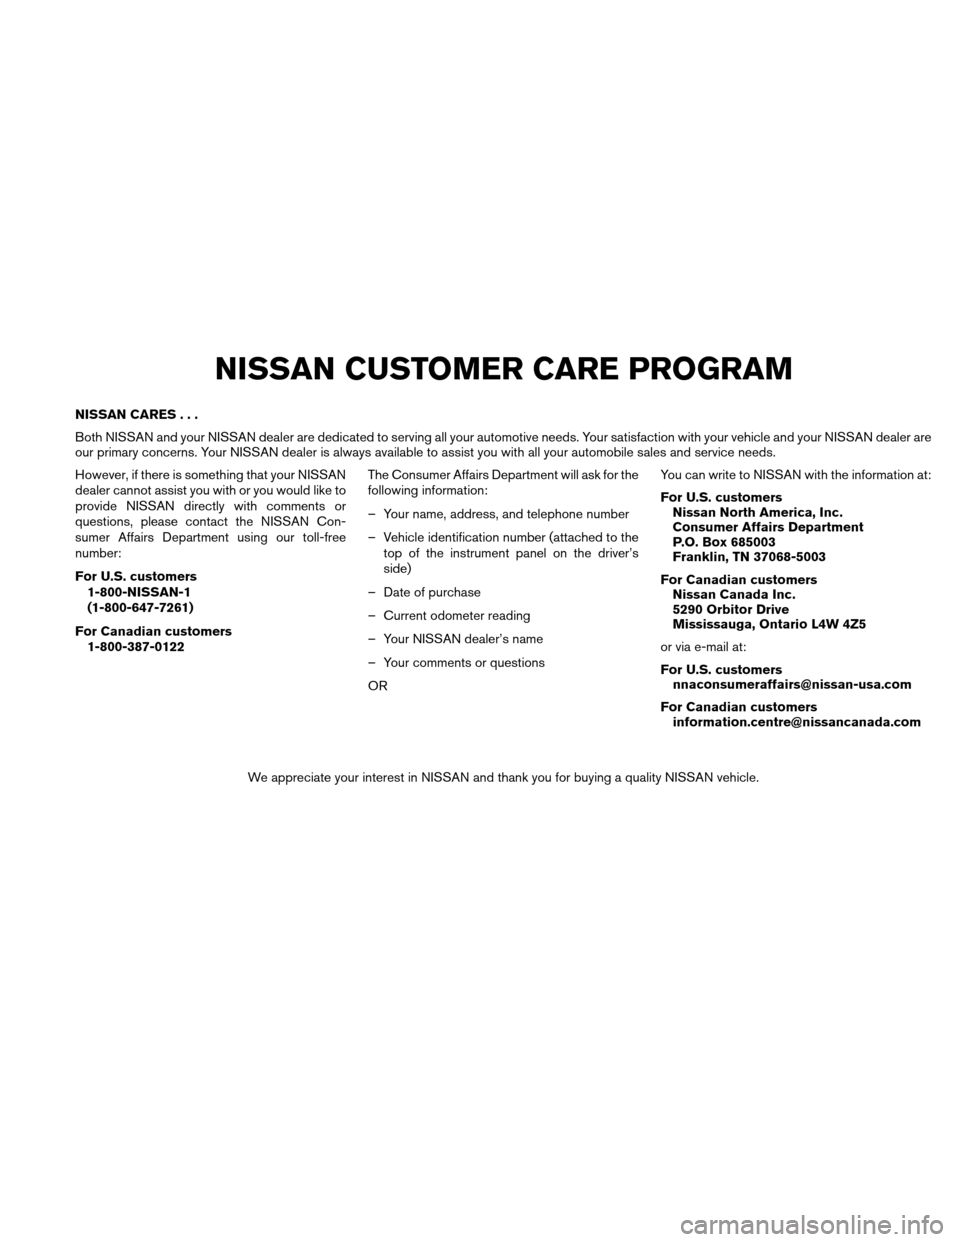 NISSAN XTERRA 2011 N50 / 2.G Owners Manual, Page 5